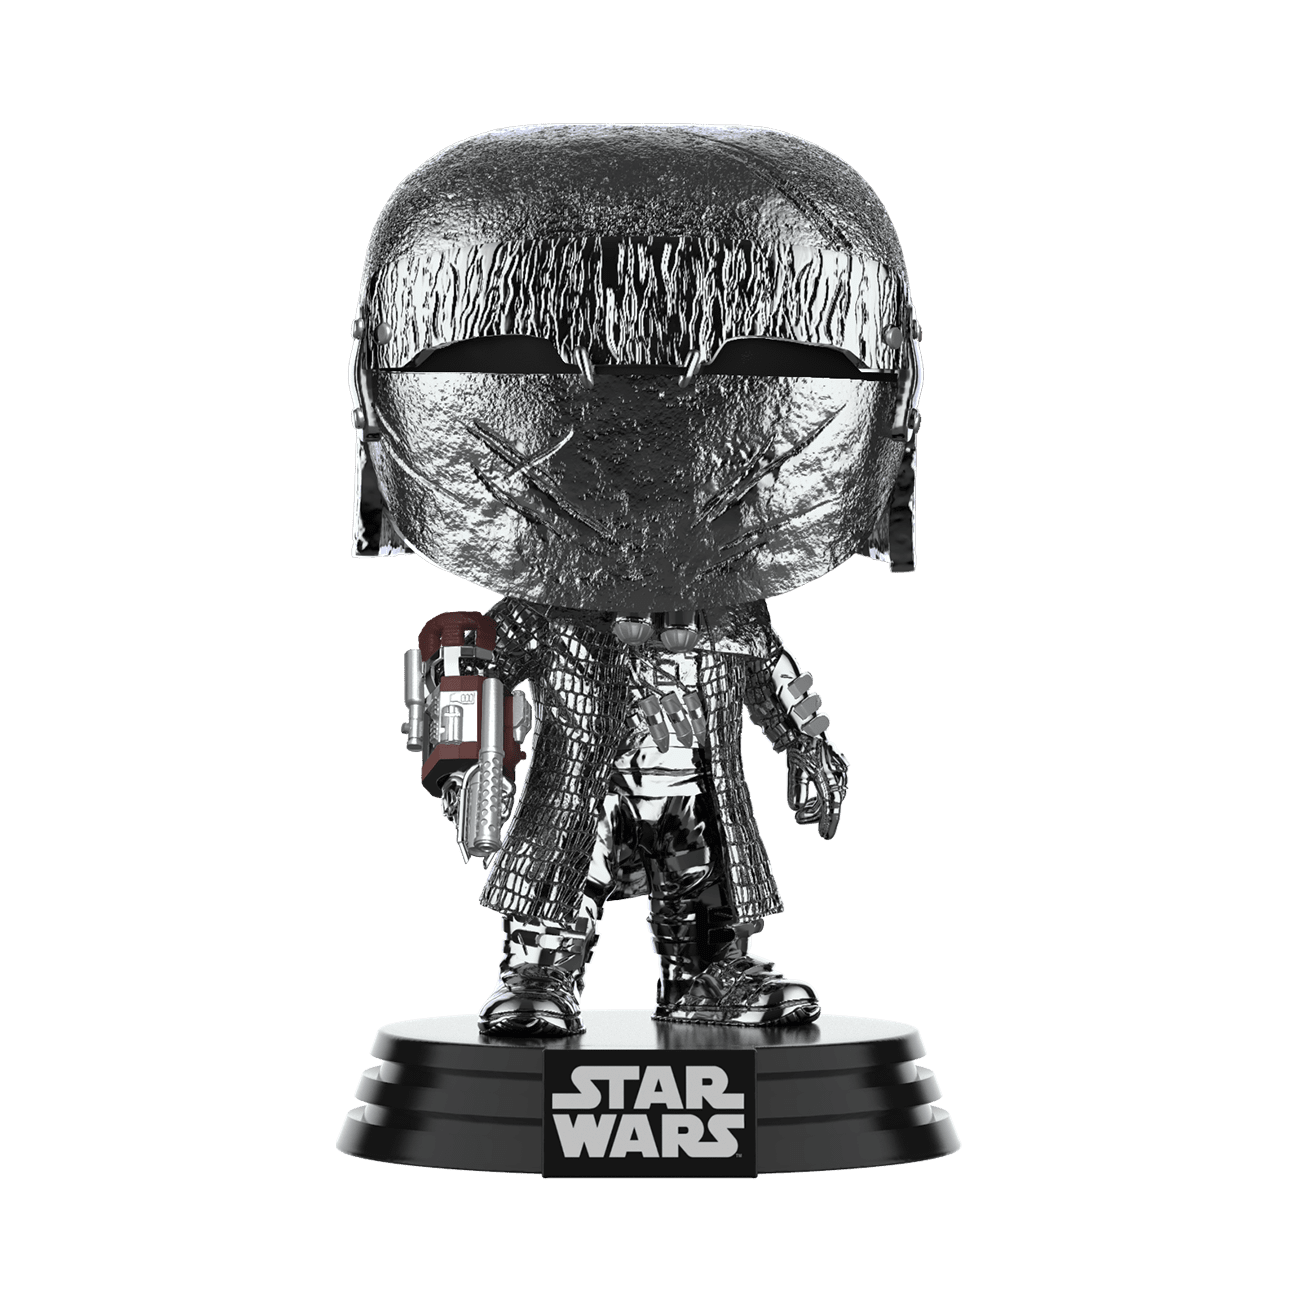 Star Wars: The Rise of Skywalker Hematite Chrome Knight of Ren Cannon Pop! Vinyl Figure